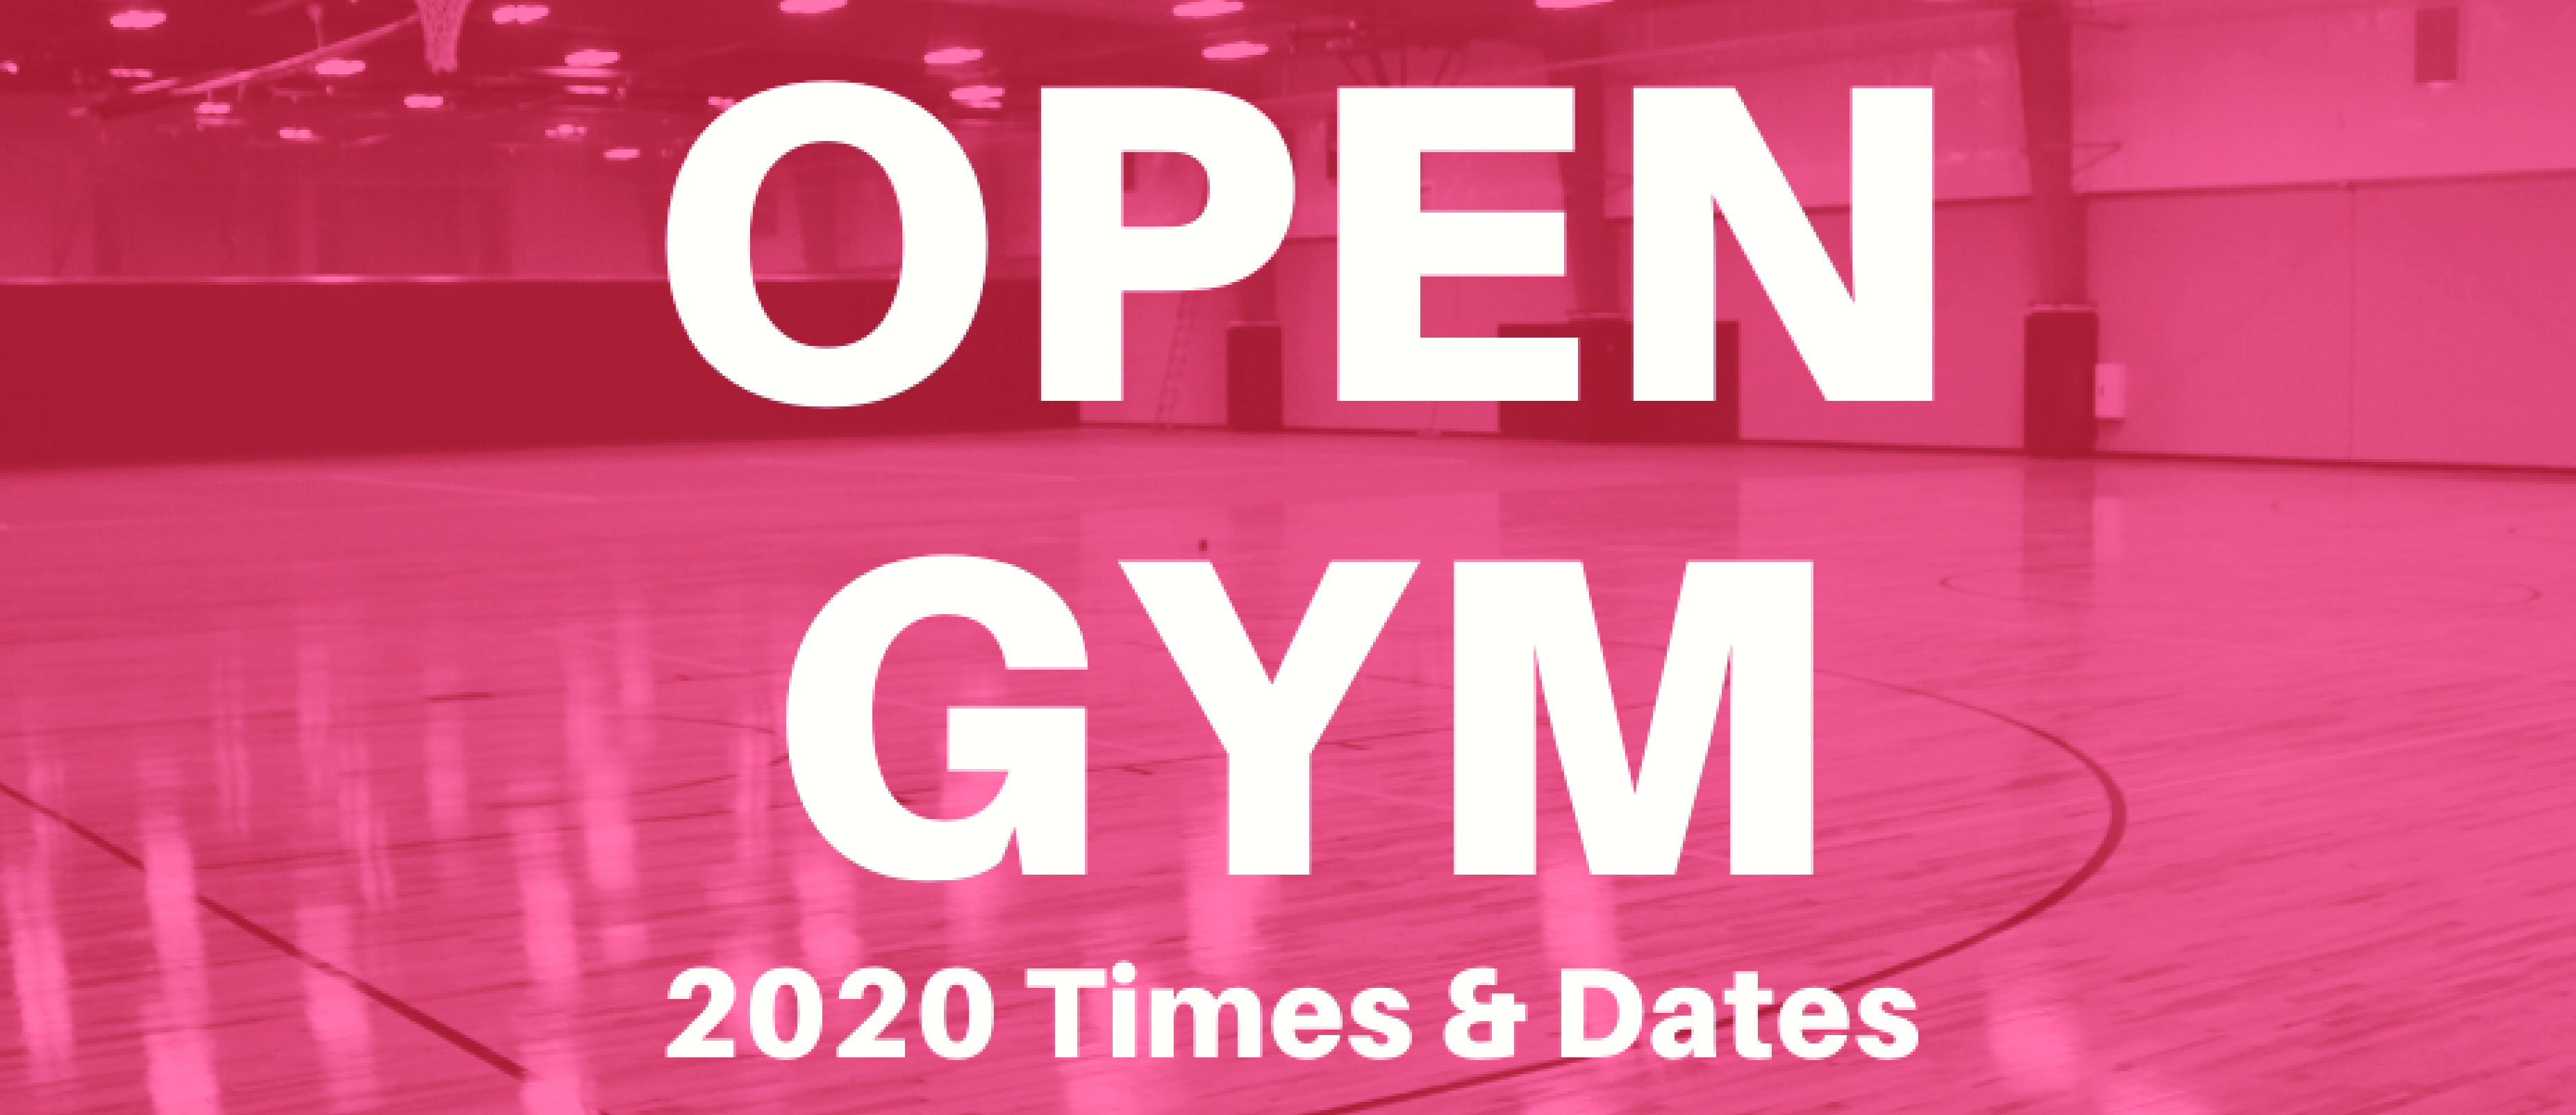 Open Gym 1920